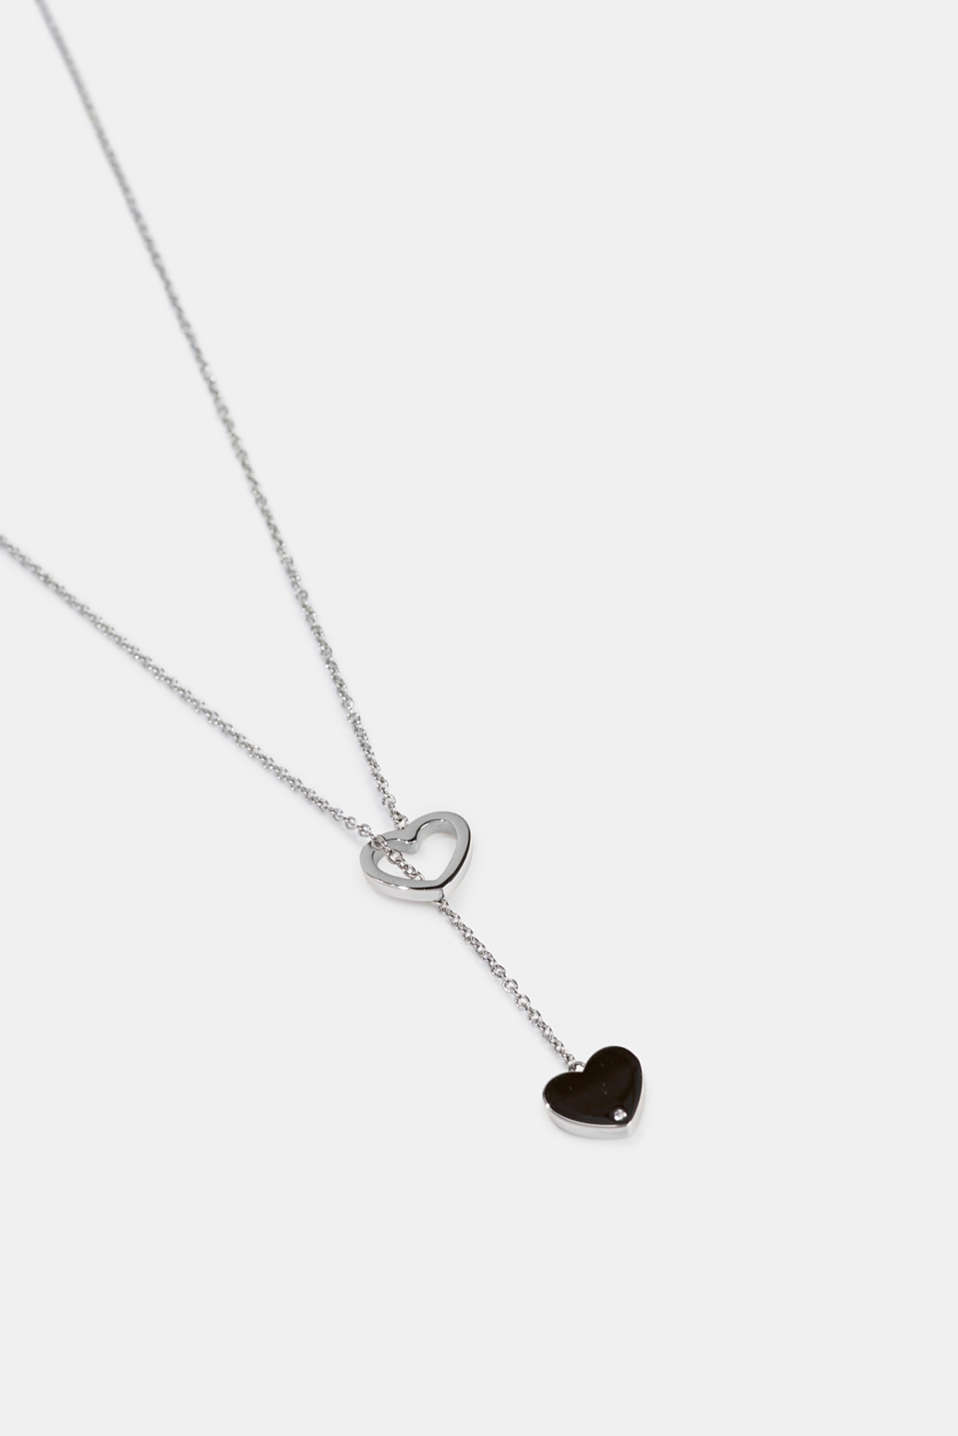 Pendant necklace with heart charm, stainless steel, SILVER, detail image number 1